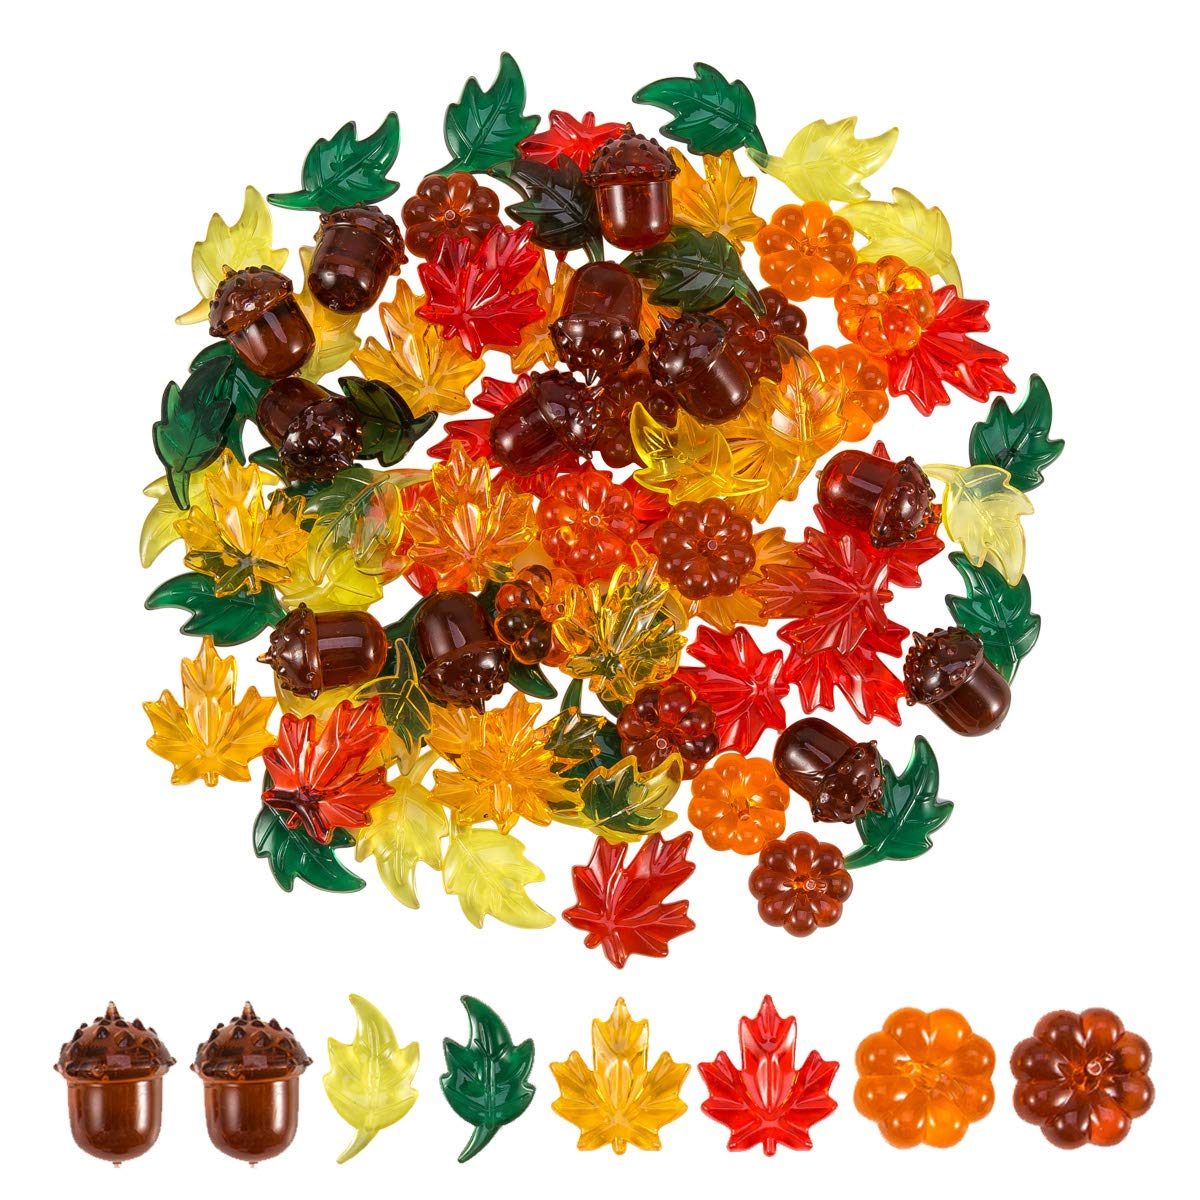 84 Pieces Acrylic Leaves Mini Acrylic Pumpkin Maple Leaves Acorns Crystals Gems for Thanksgiving Home Table Scatters Decoration Autumn Table Scatters Favor Vase Filler(5 Colors) by Toperd